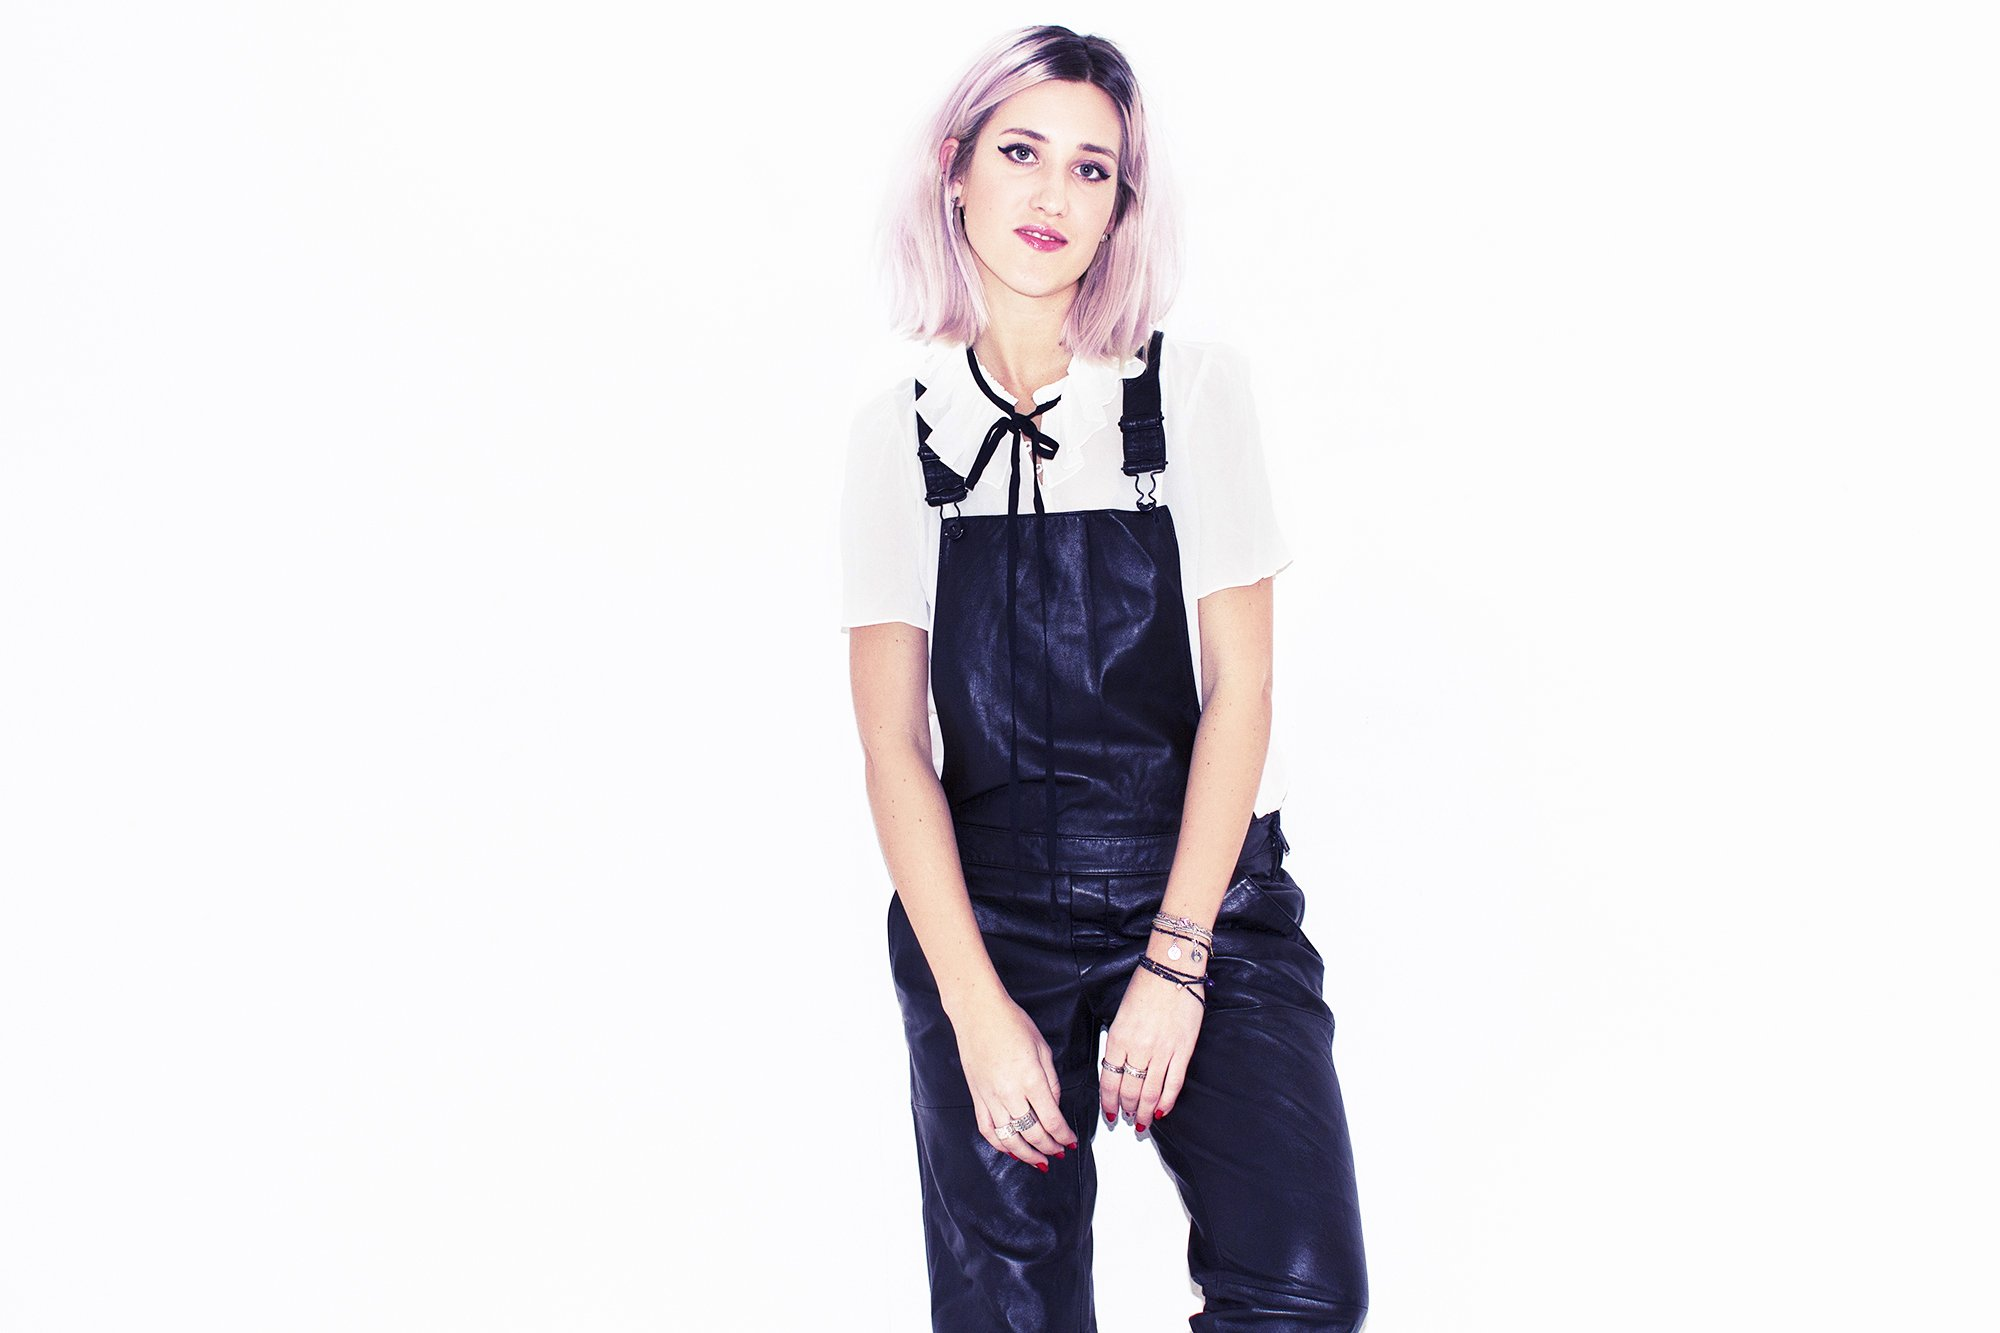 mikuta in dungarees and a white shirt